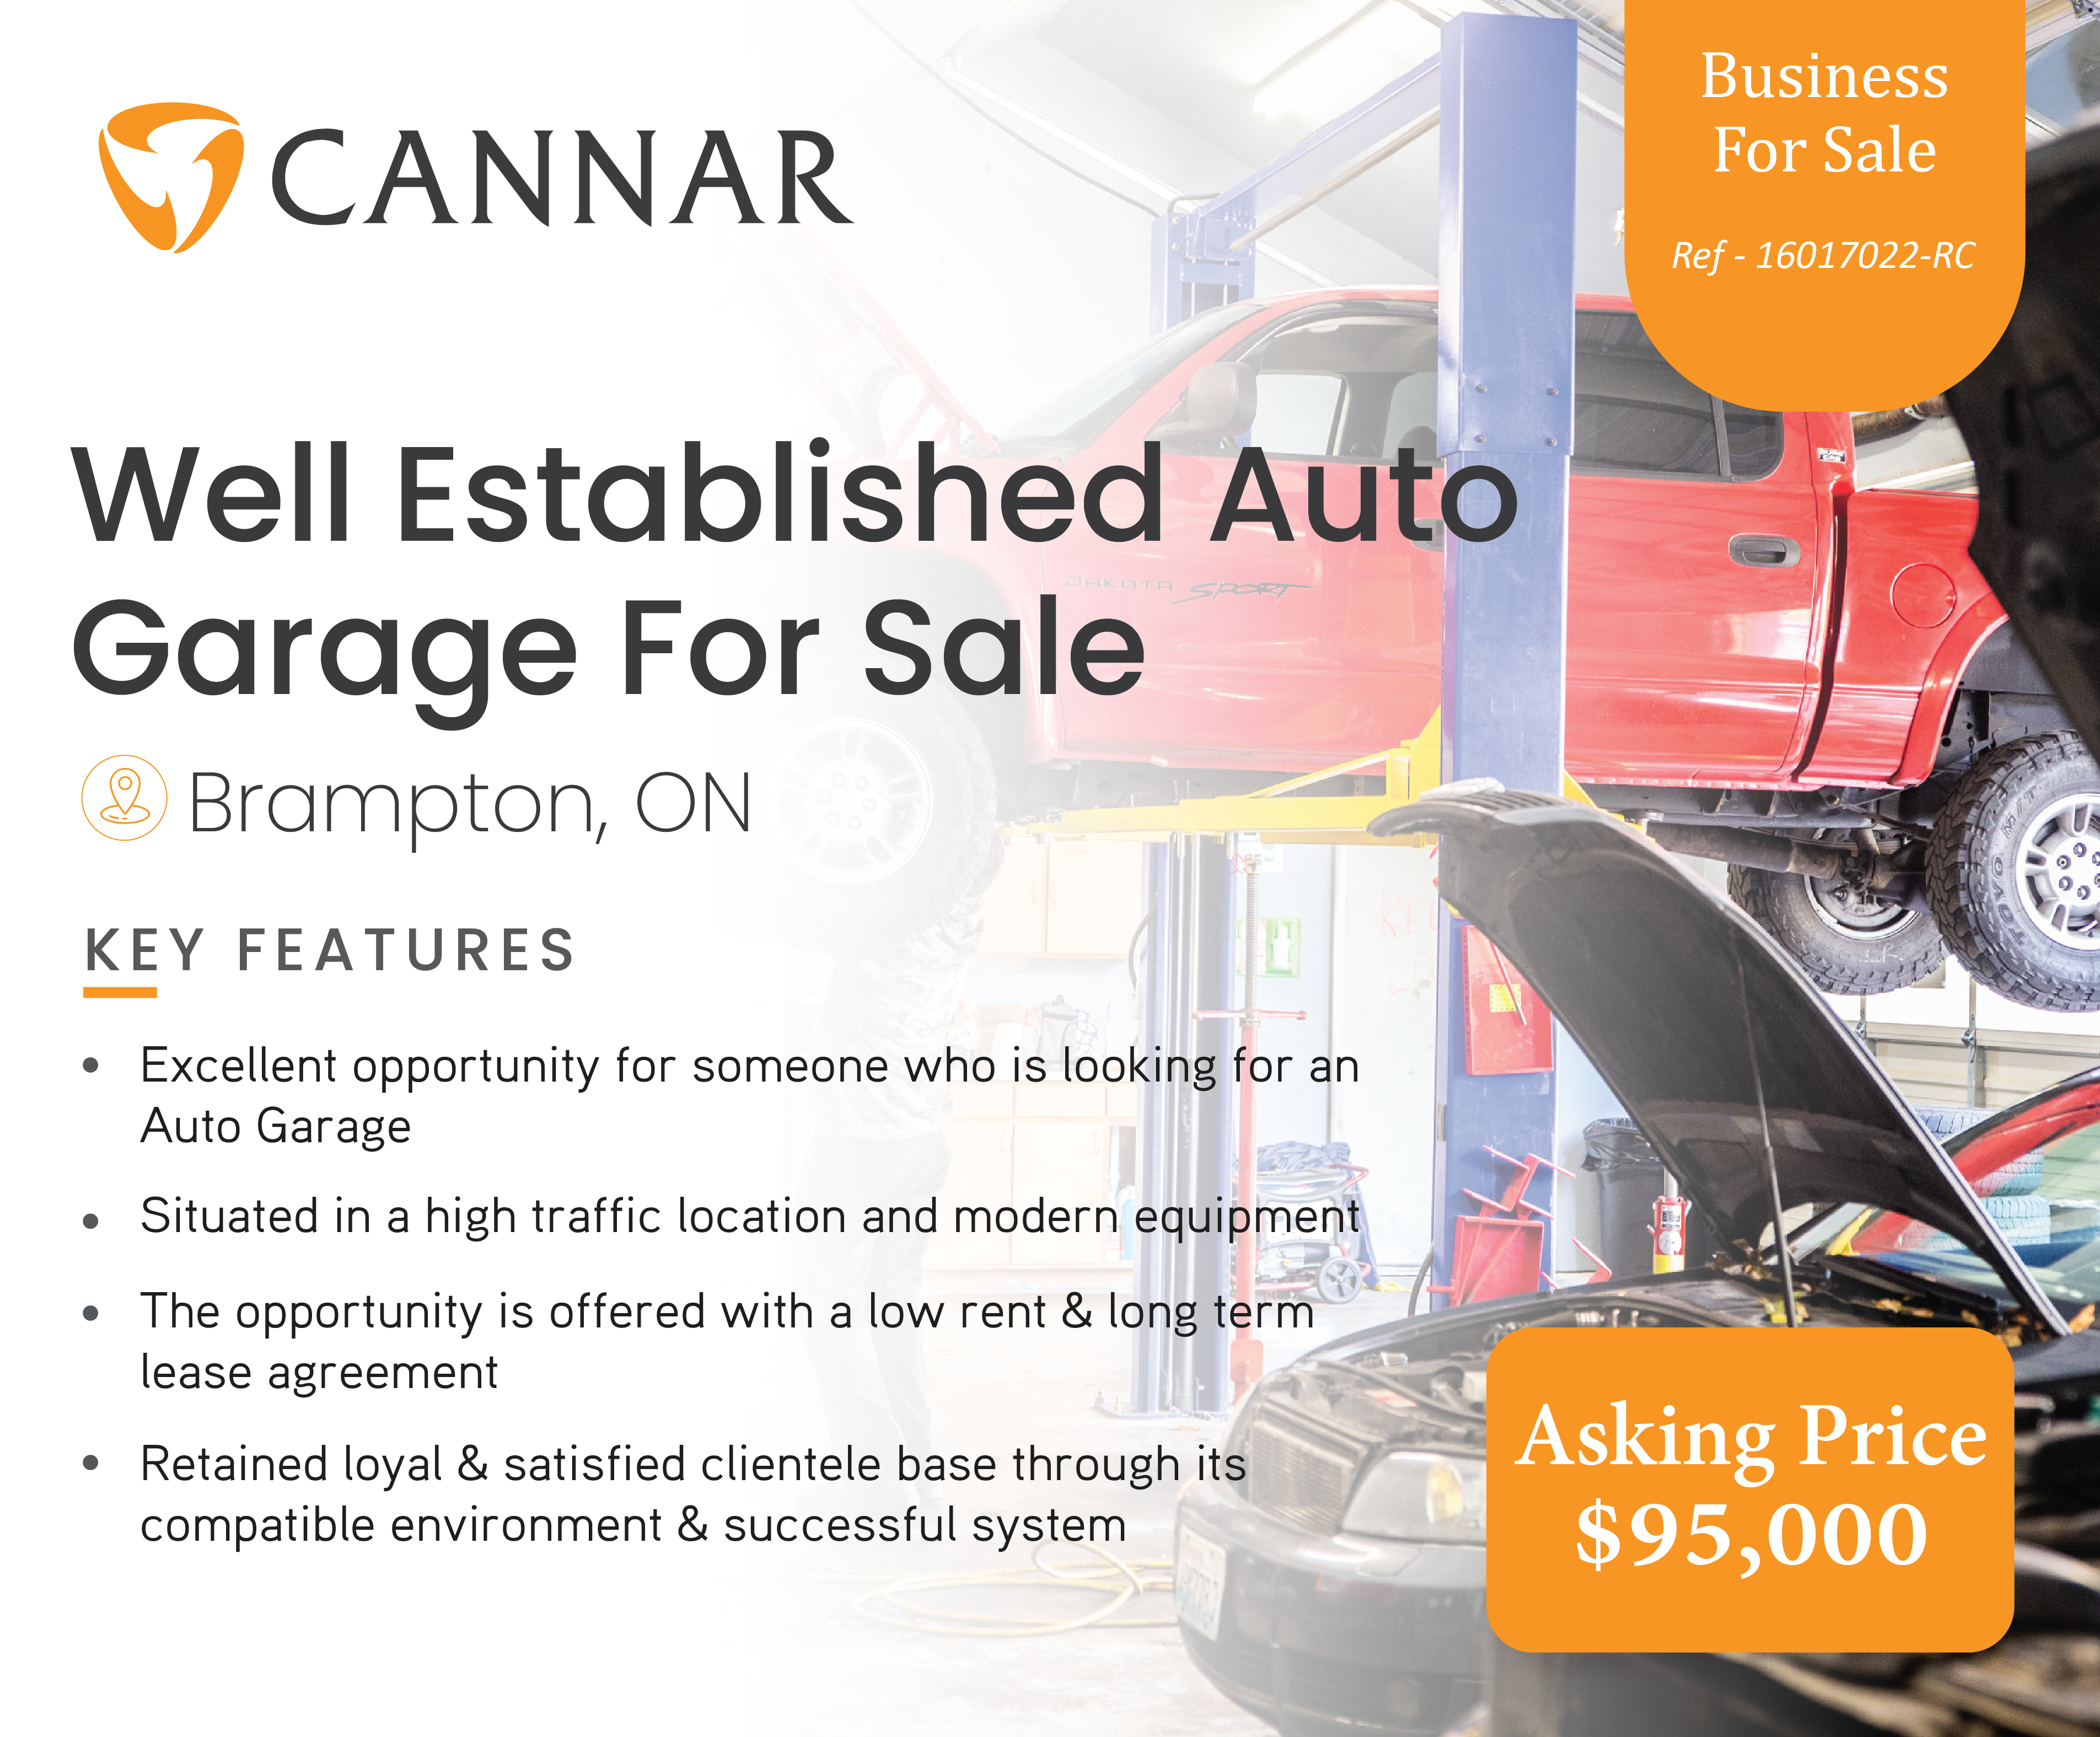 Well Established Auto Garage For Sale In Brampton, ON